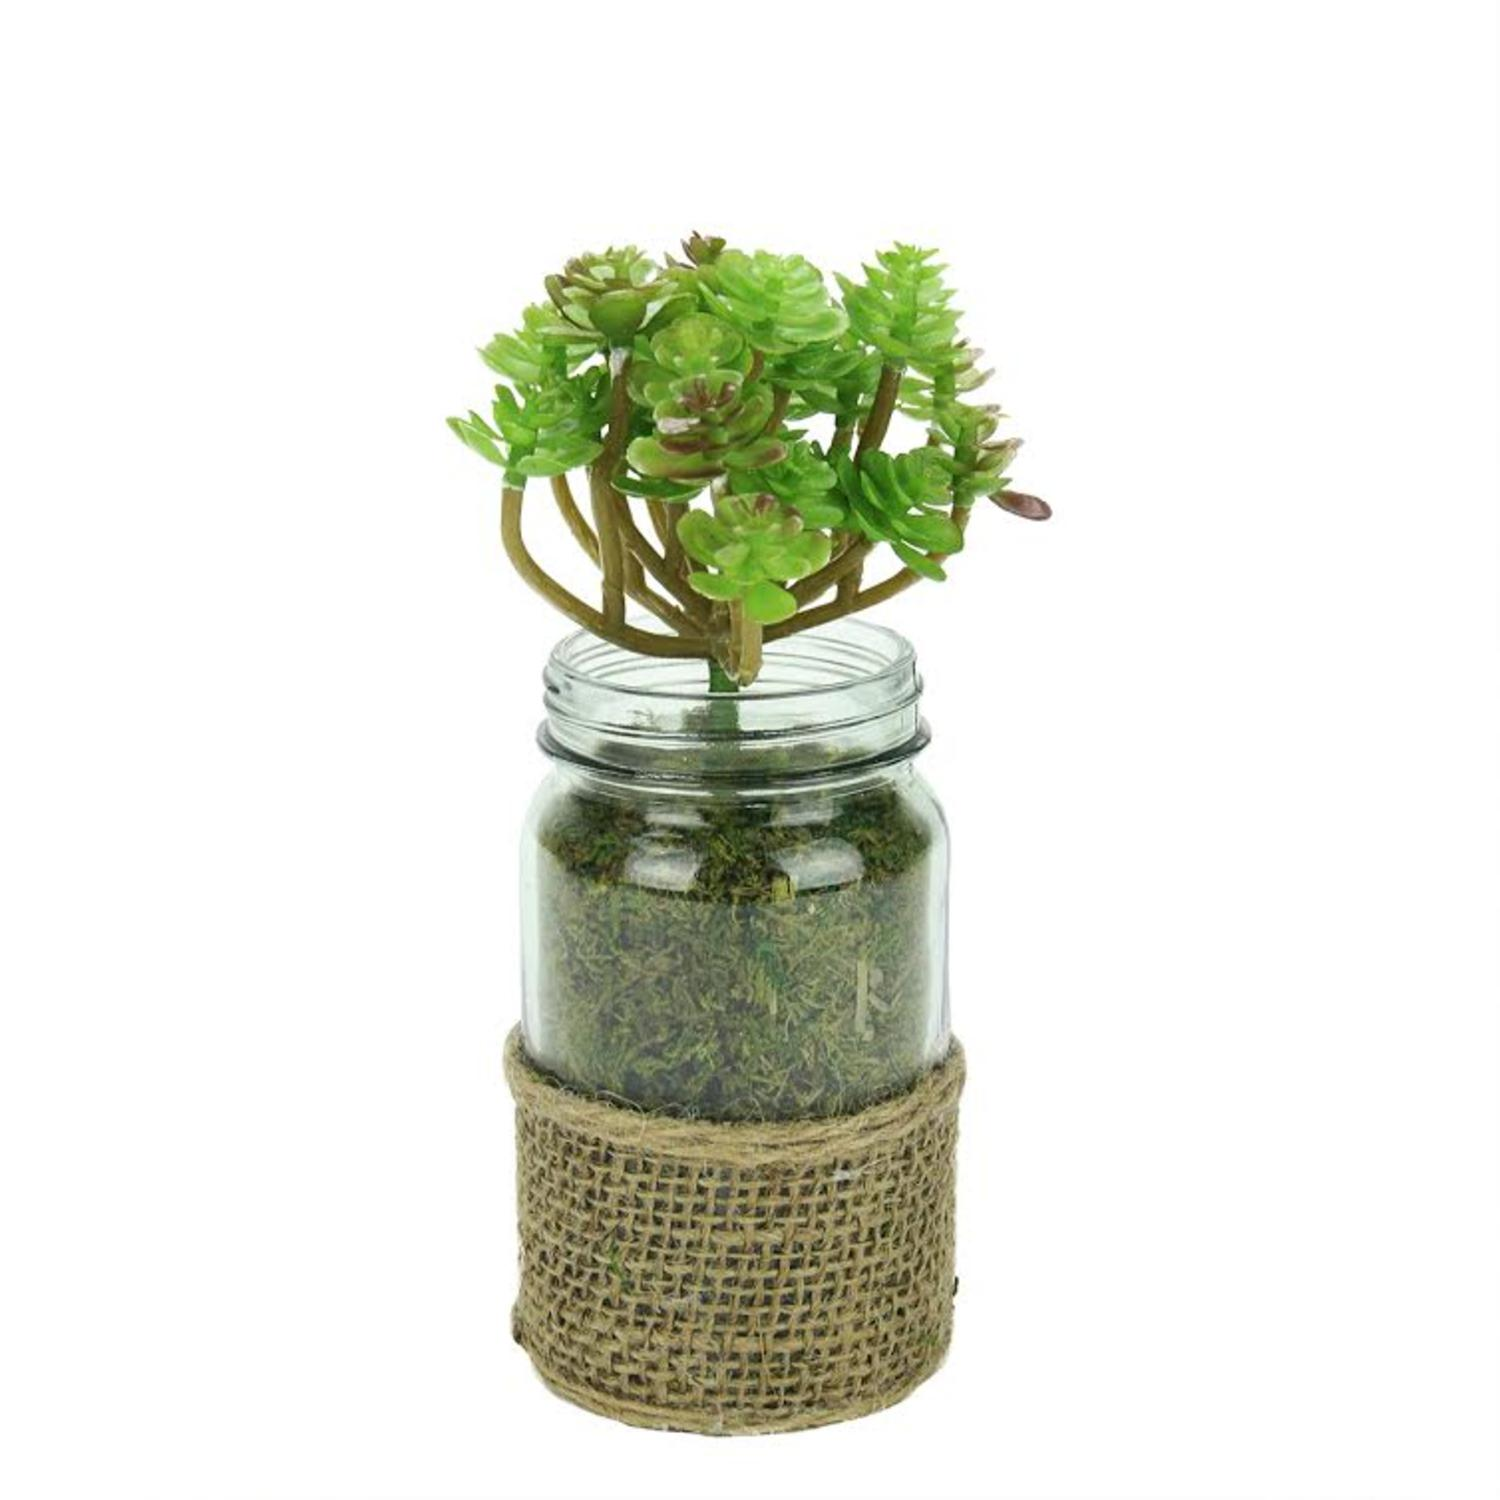 "7.25"" Green and Brown Potted Artificial Succulent Plant in Glass Jar with Burlap Grip"